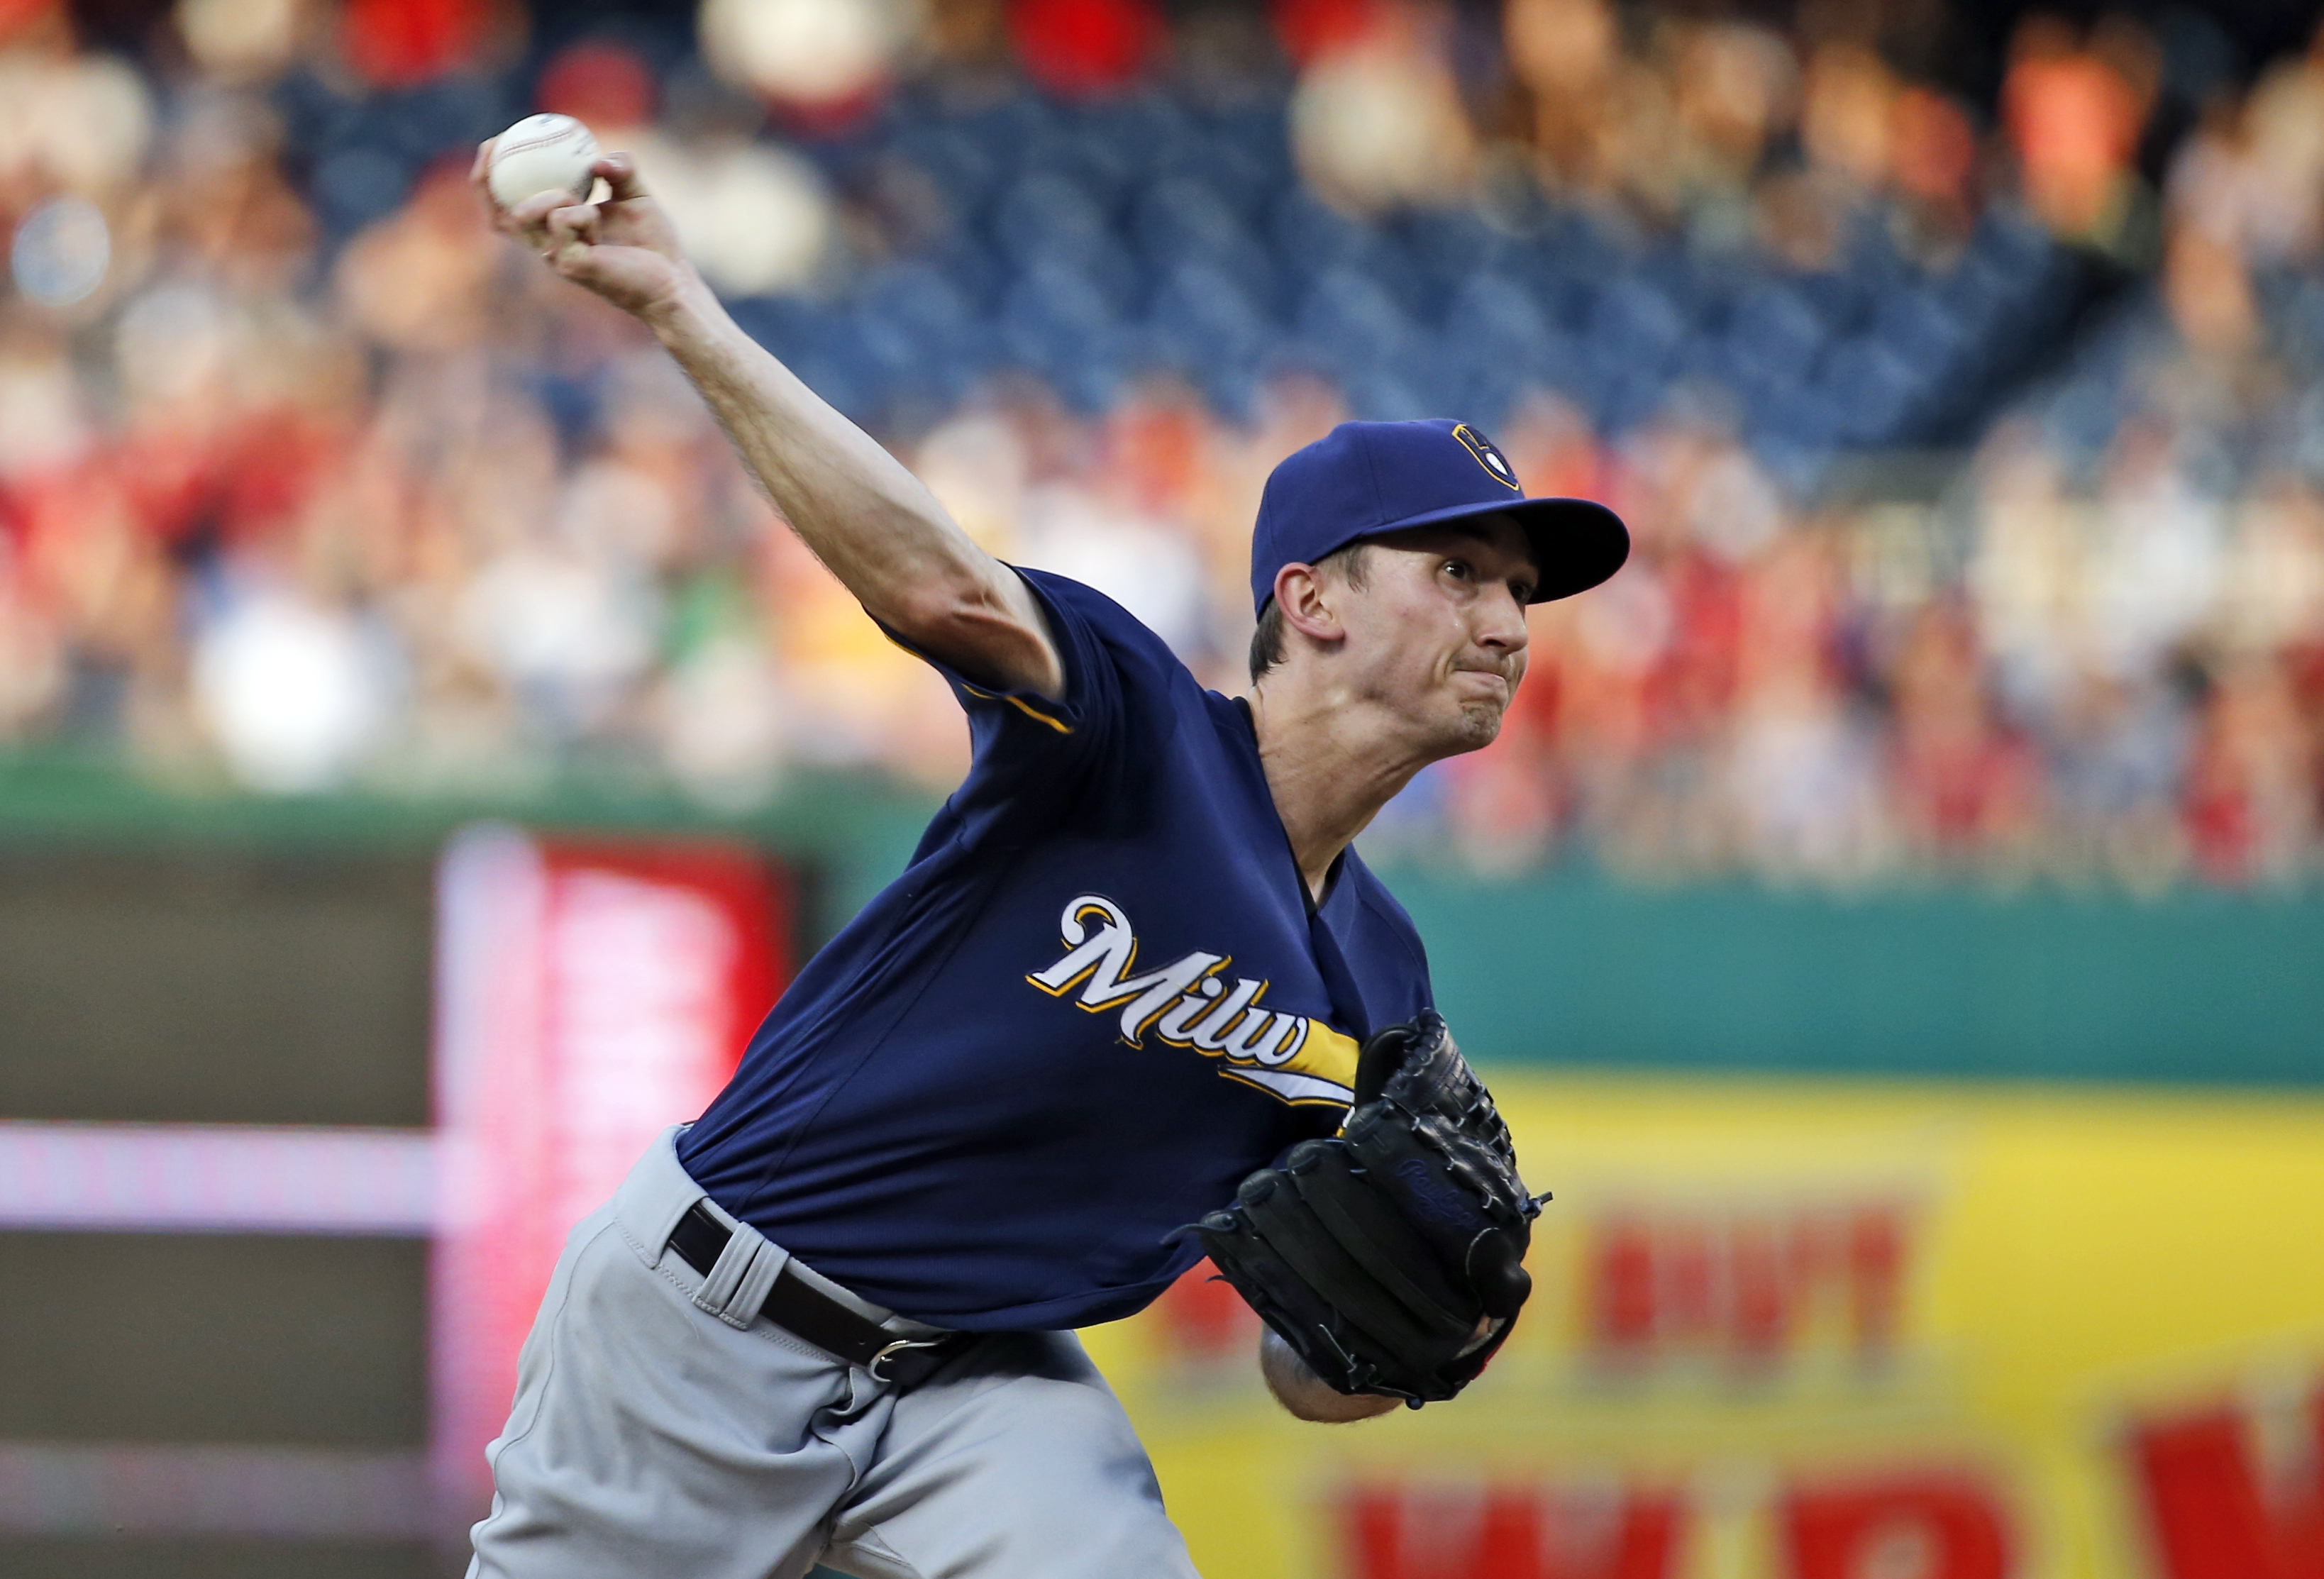 Milwaukee Brewers starting pitcher Zach Davies throws during a baseball game against the Washington Nationals at Nationals Park, Tuesday, July 5, 2016, in Washington. (AP Photo/Alex Brandon)